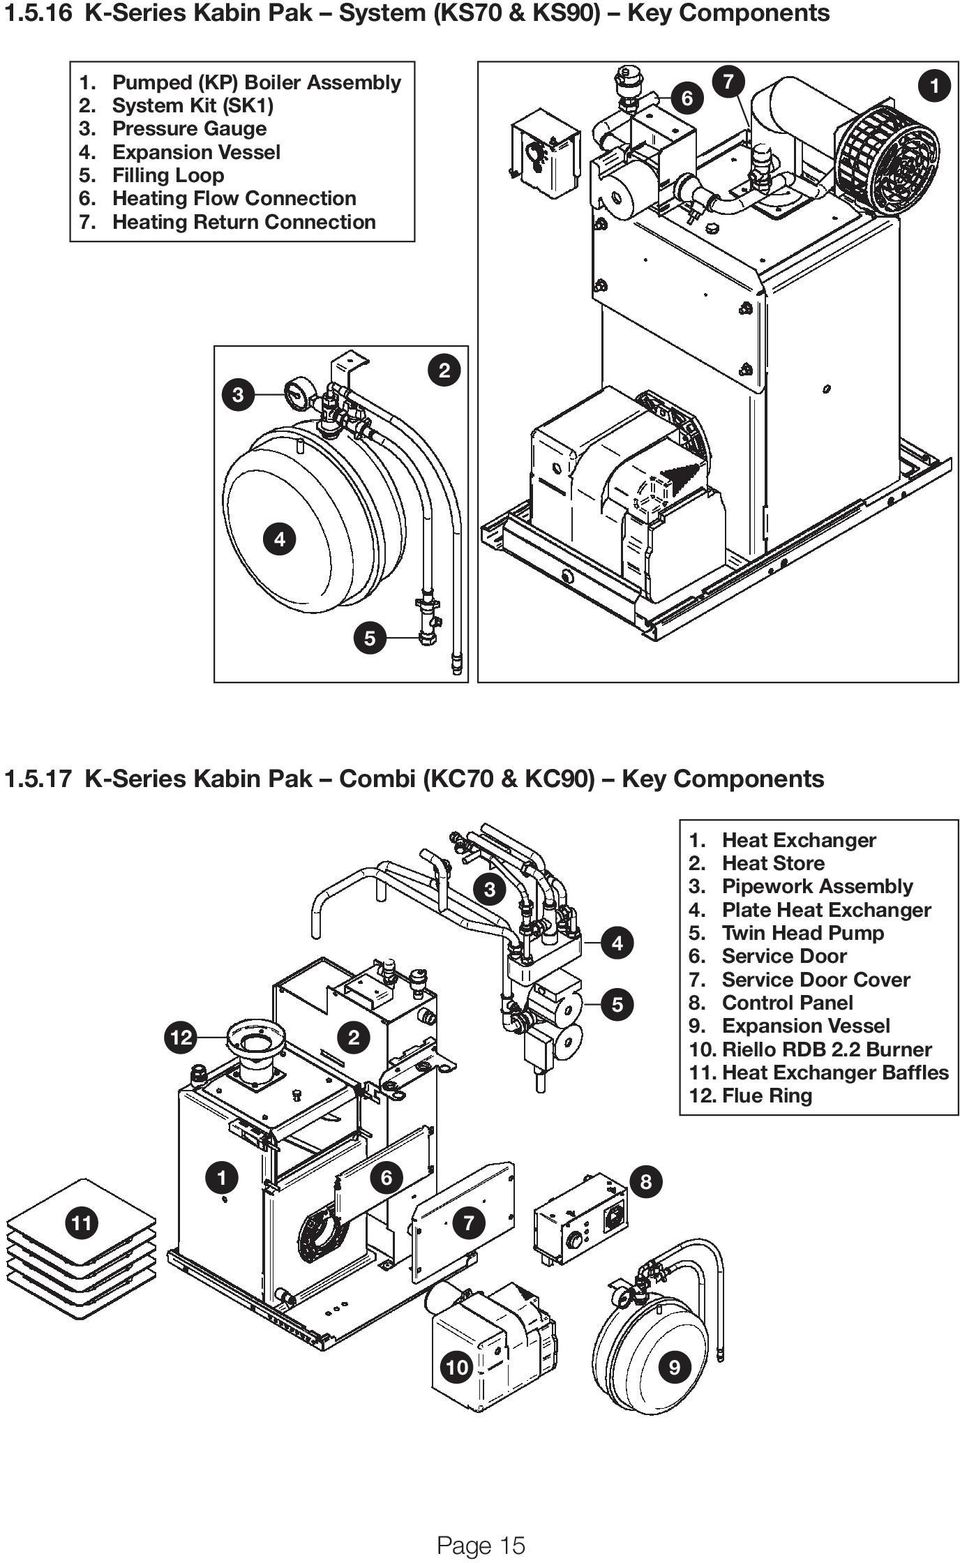 20 technical details 21 combi sequence of operation flow chart heat exchanger 2 heat store 3 pipework assembly 4 plate heat exchanger 5 cheapraybanclubmaster Gallery